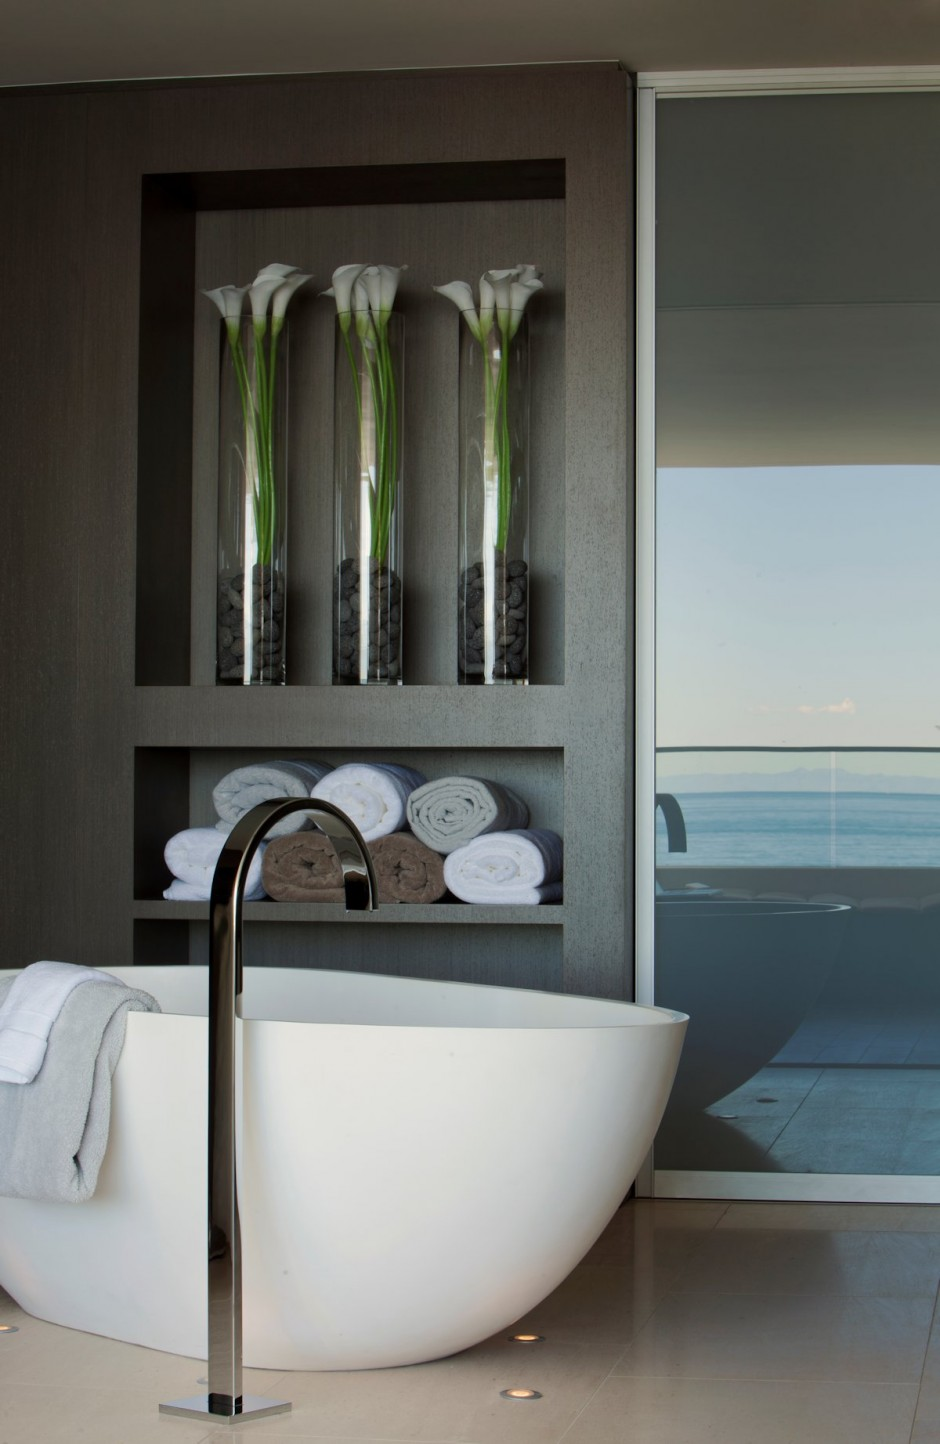 Freestanding Bath Tub - Oceanfront house with pool california